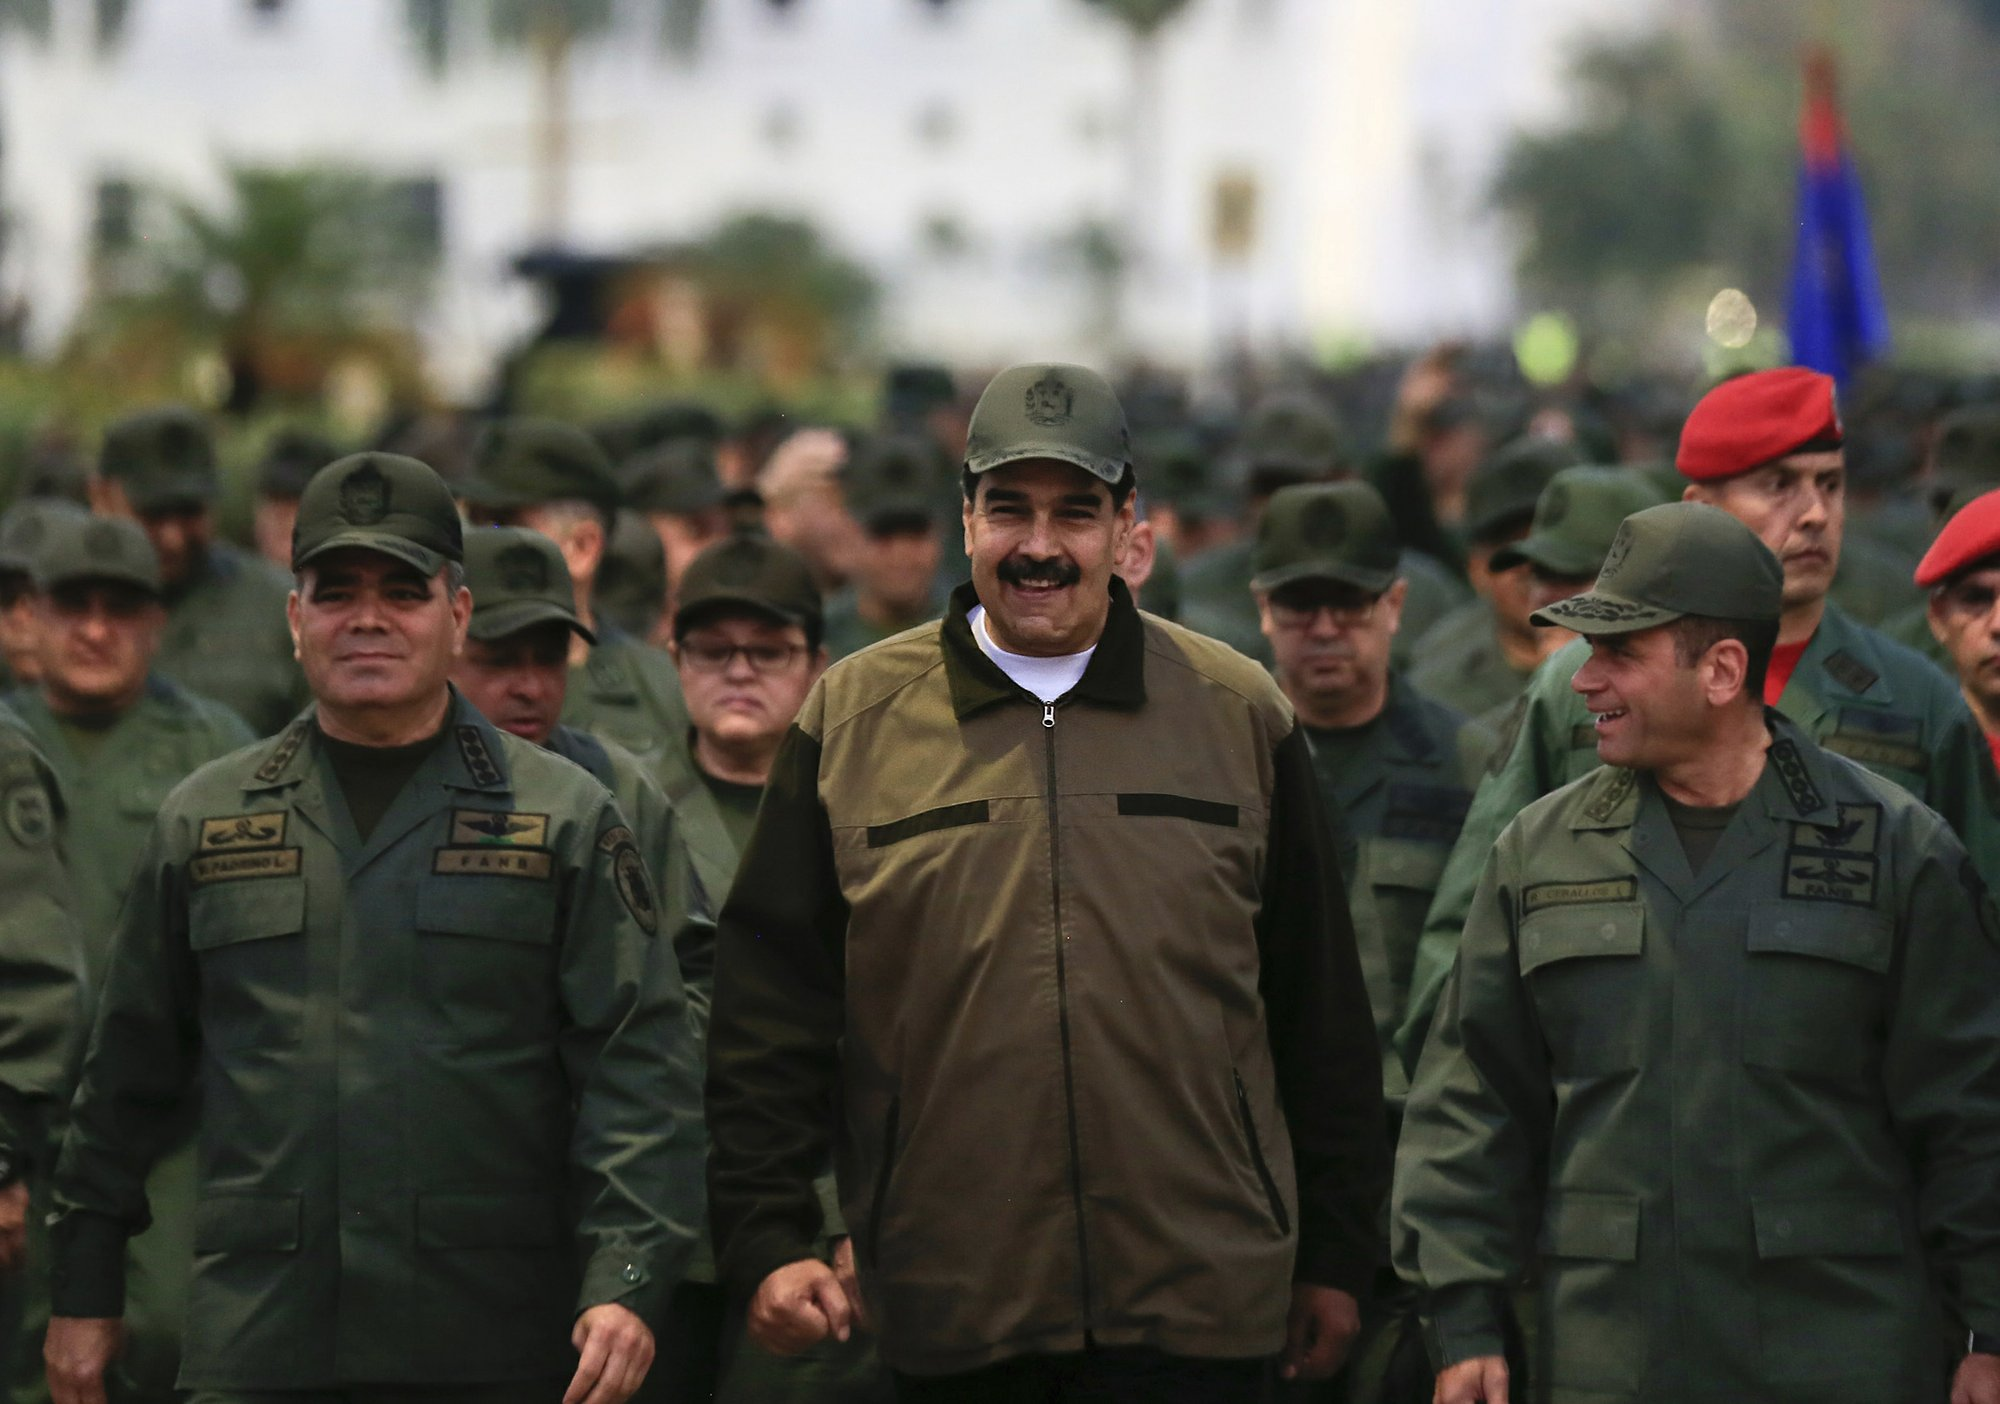 Day Of Calm In Venezuela Prior To Expected New Round Of US-backed Protests